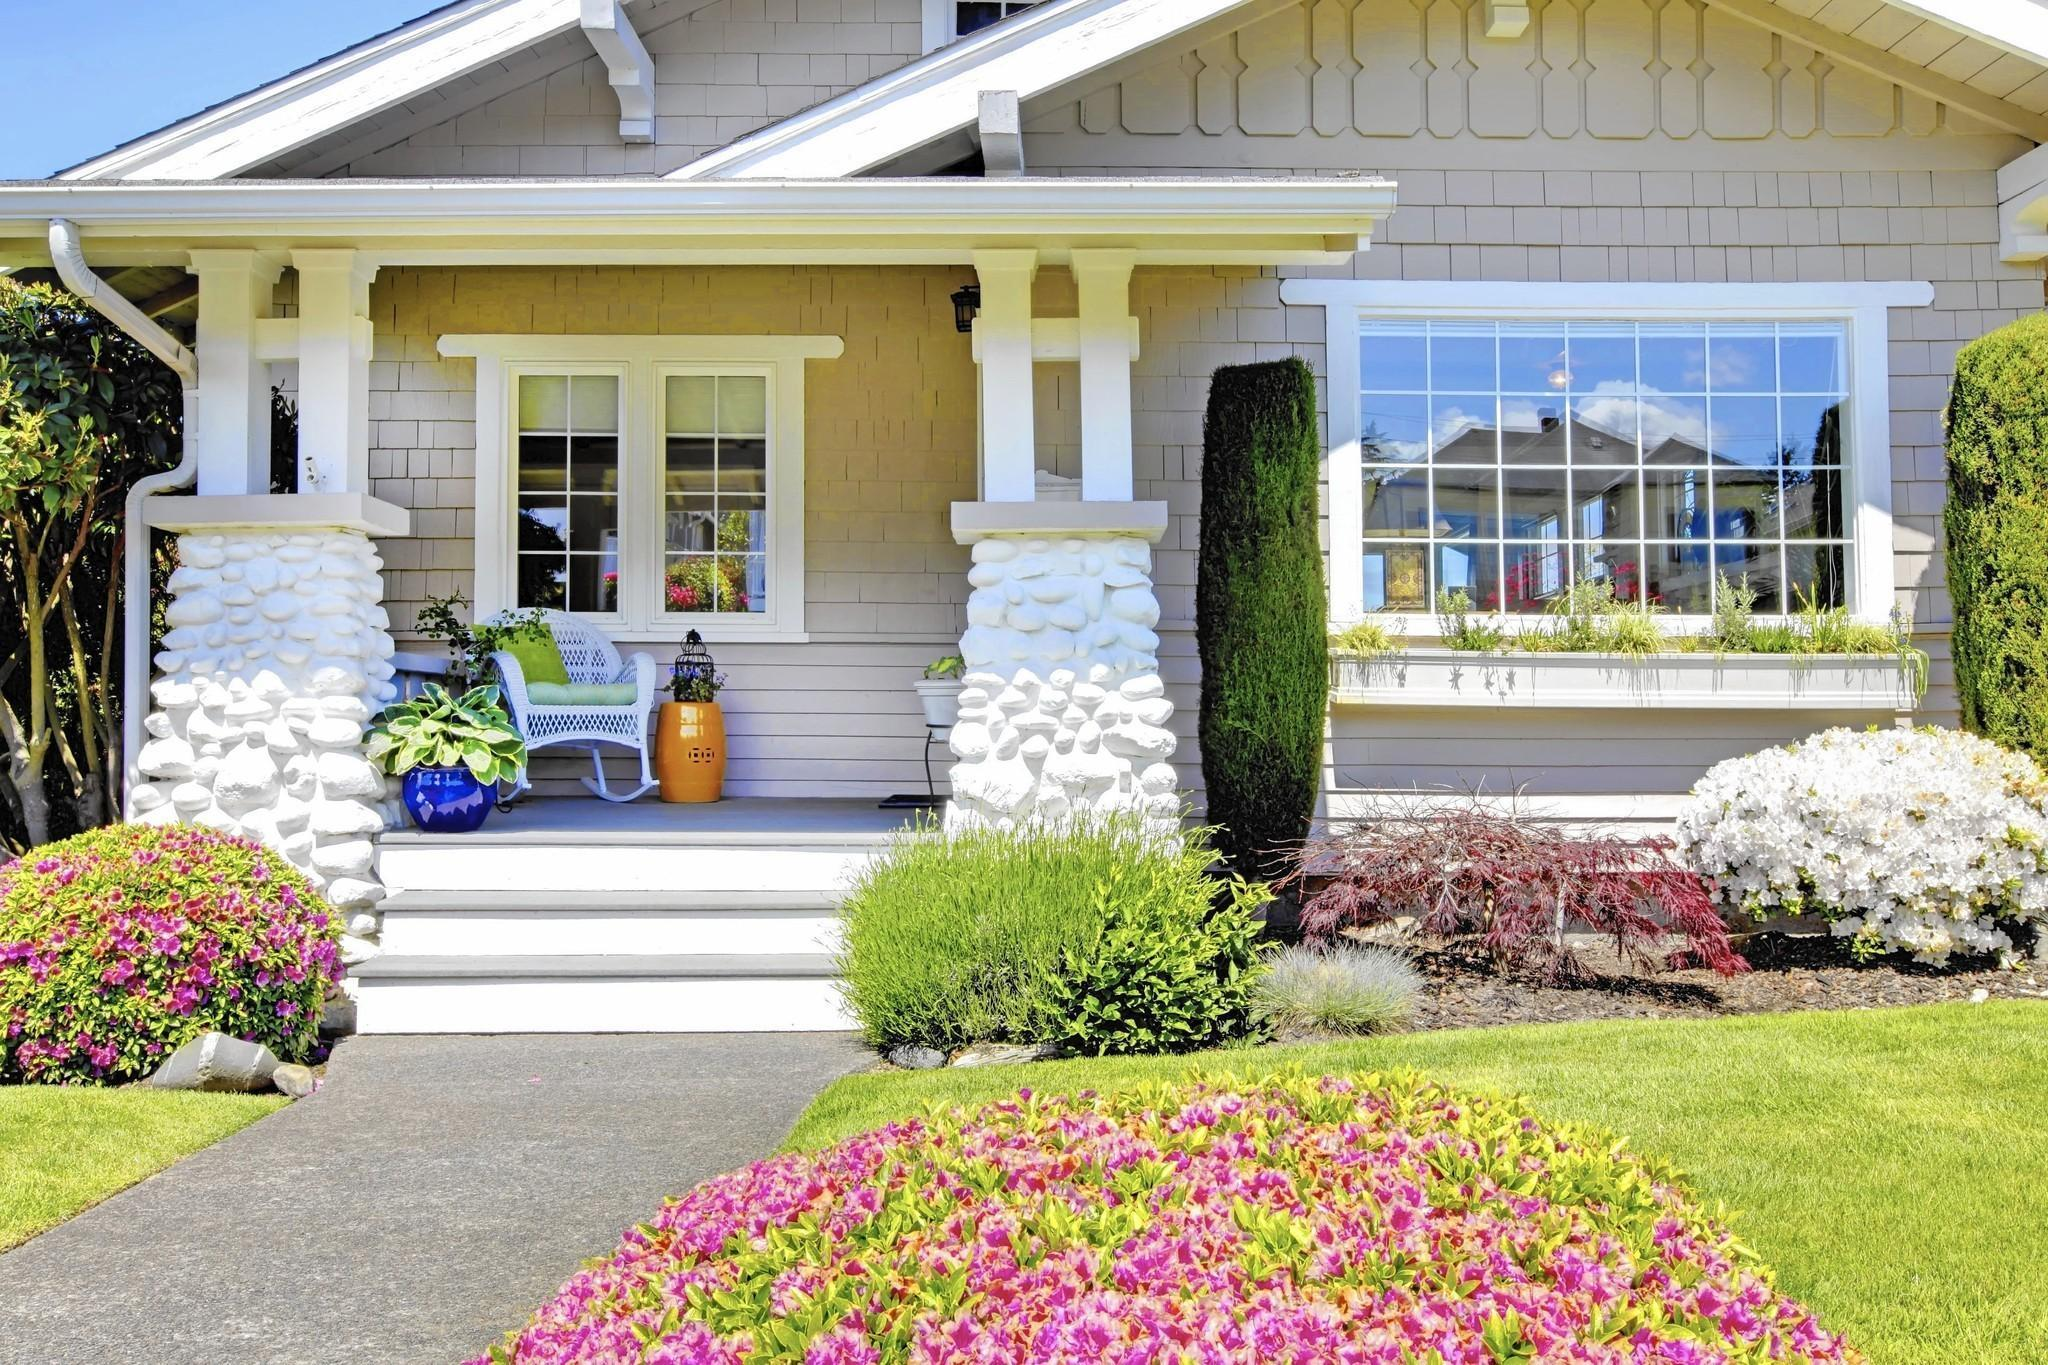 Curb appeal reconsider landscaping in front yard for Normal house front design